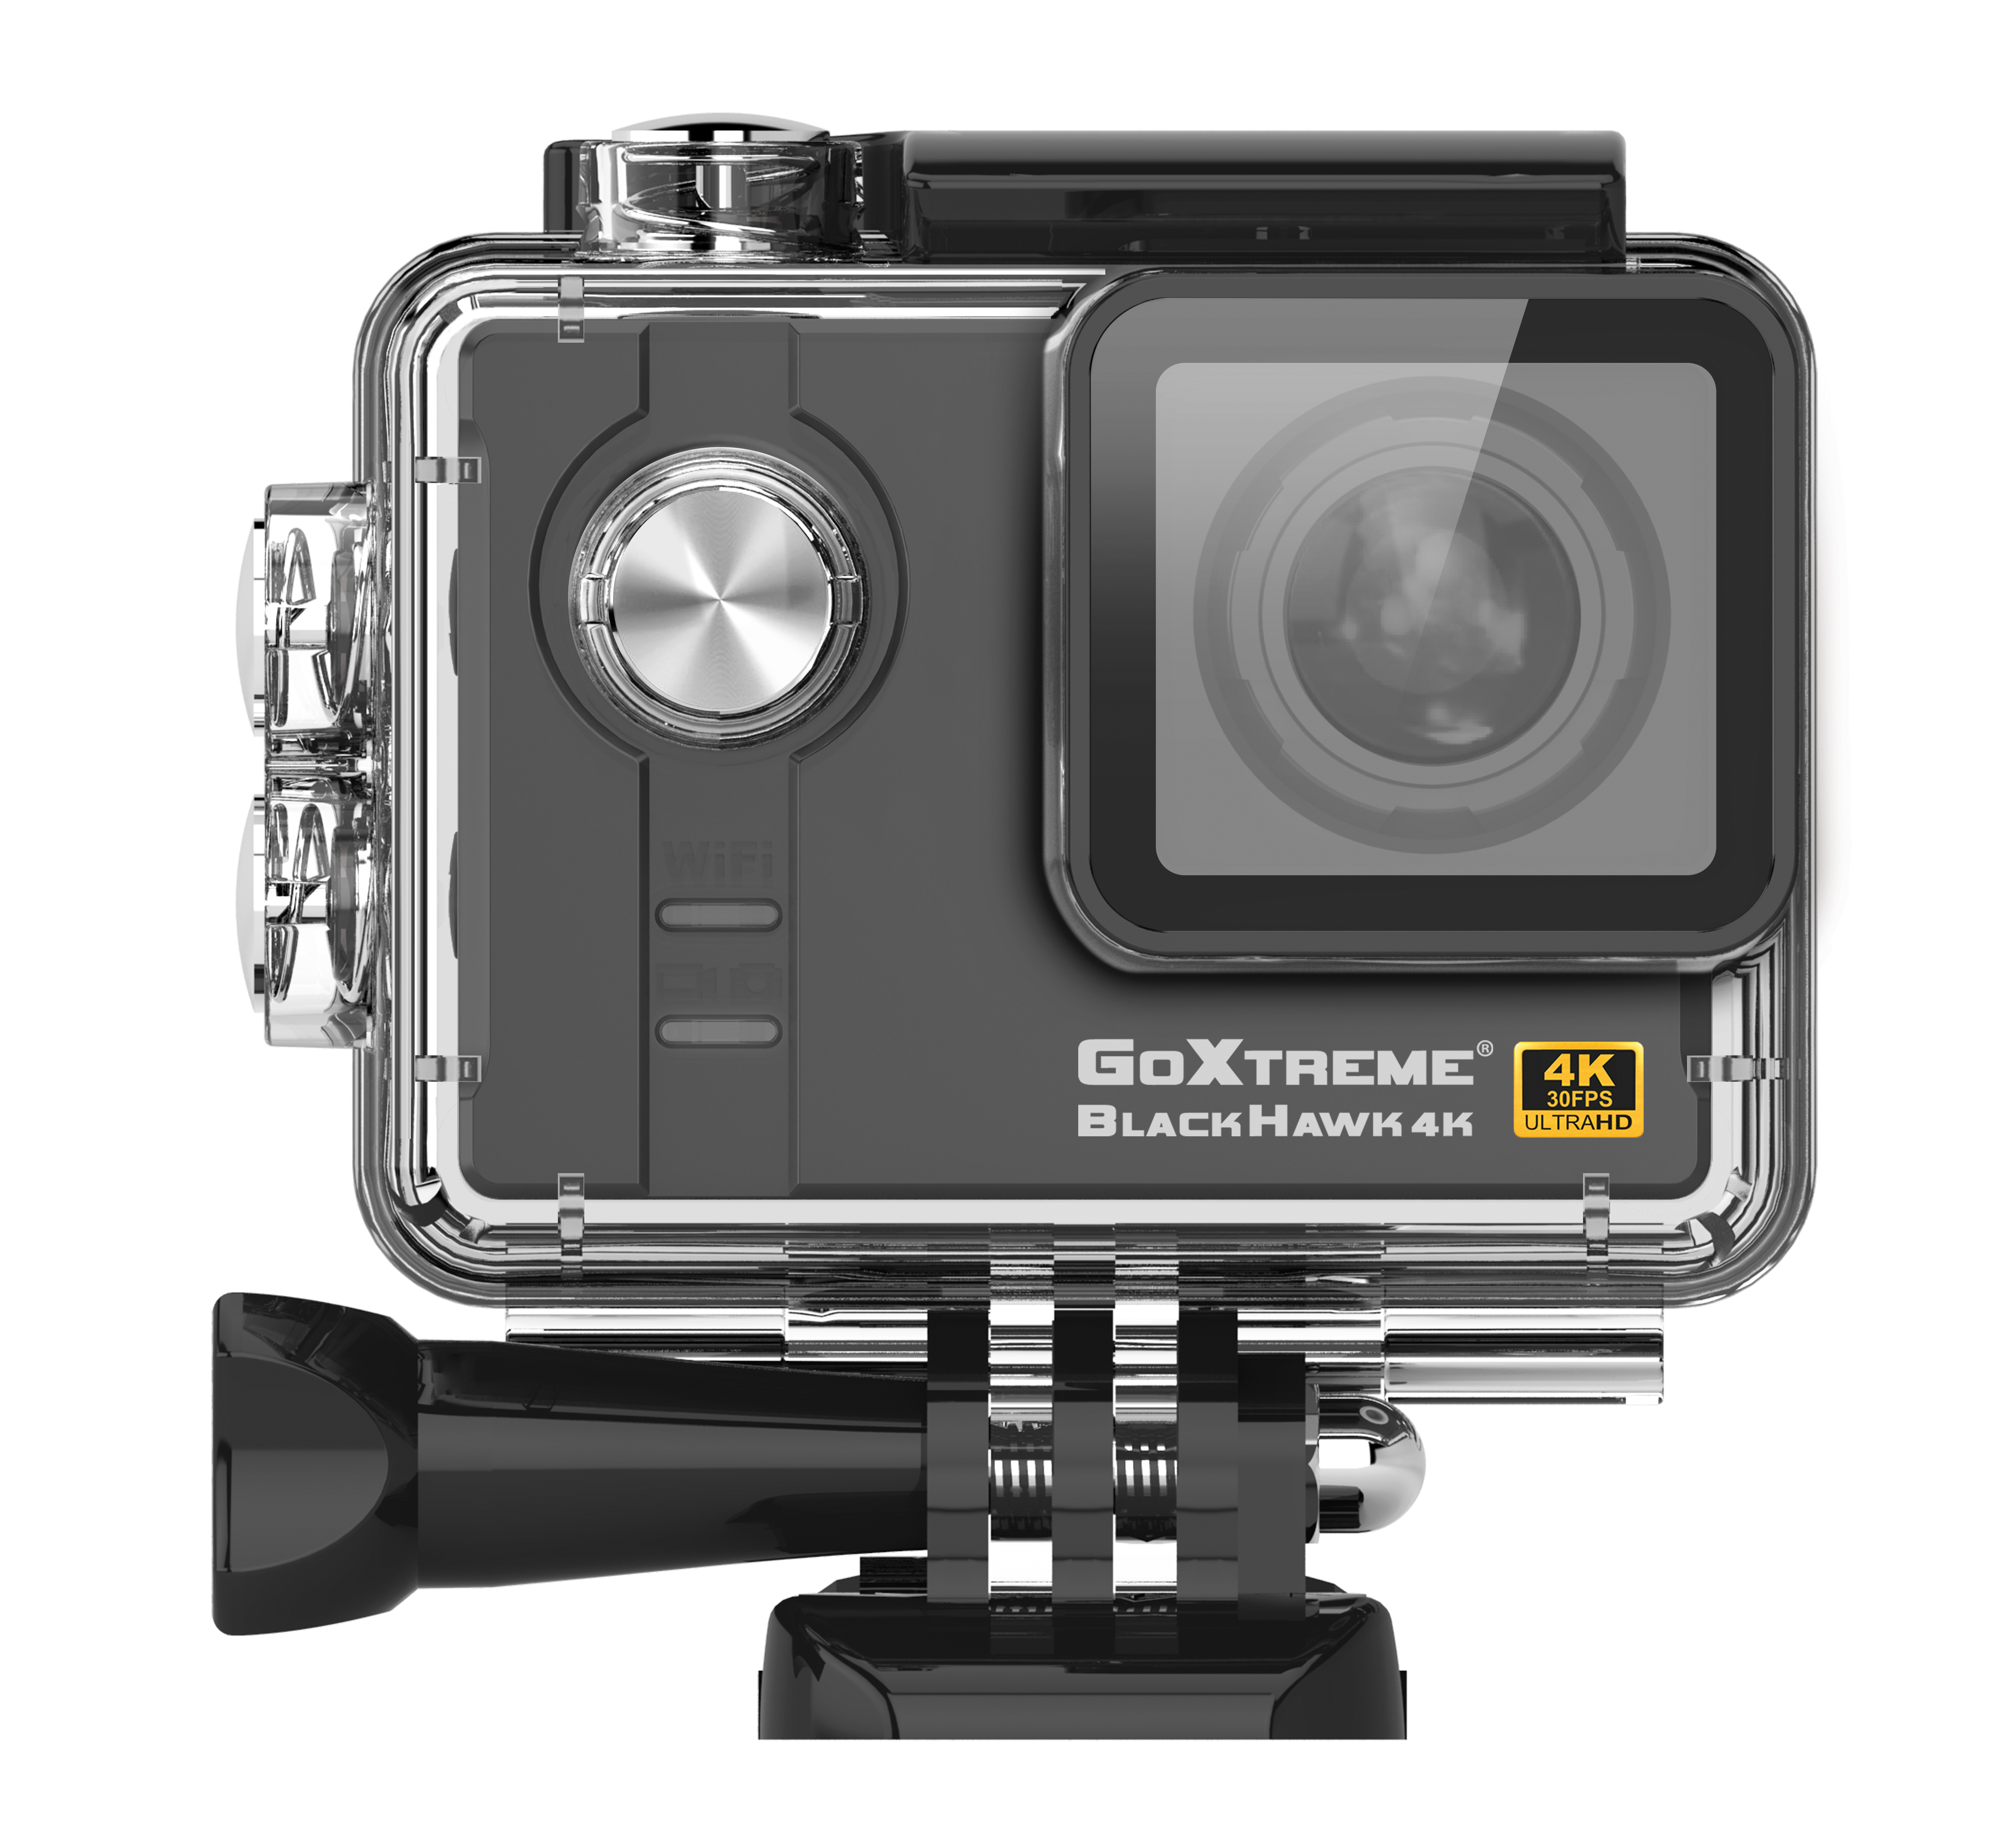 NEW Goxtreme 20132 Black Hawk 4K Actioncam In - Walton-on-Thames, United Kingdom - Returns accepted Most purchases from business sellers are protected by the Consumer Contract Regulations 2013 which give you the right to cancel the purchase within 14 days after the day you receive the item. Find out mo - Walton-on-Thames, United Kingdom